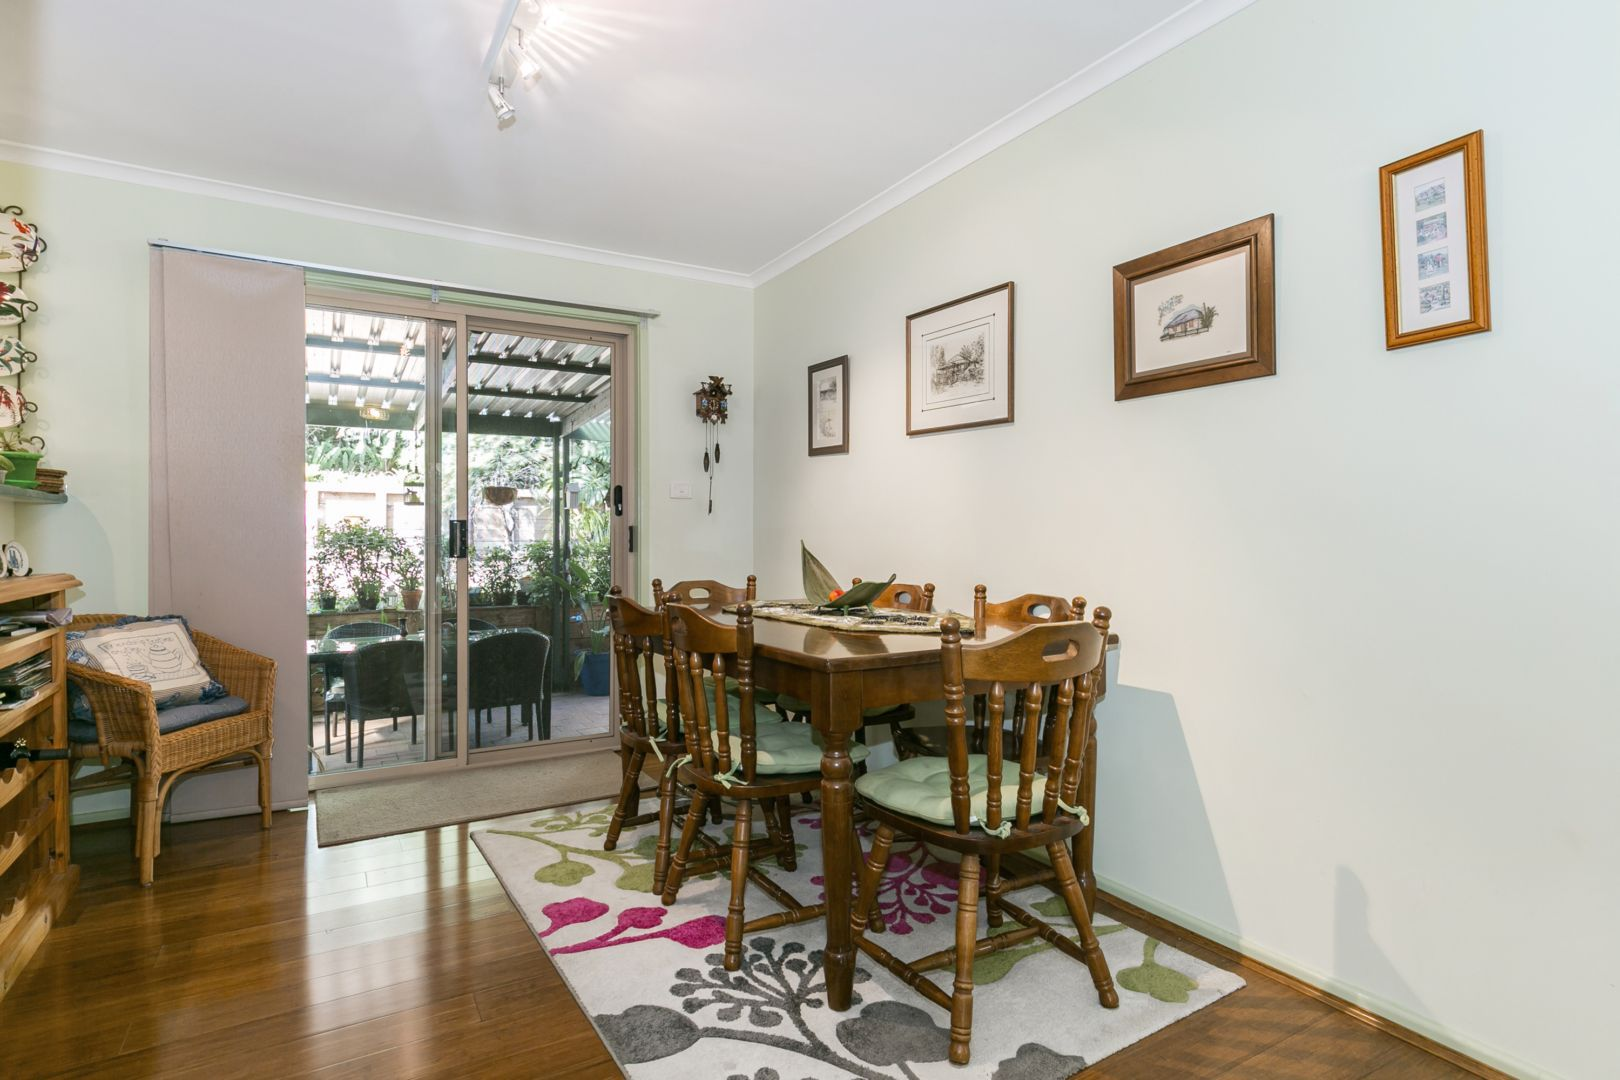 26A Turnbull Street, Fennell Bay NSW 2283, Image 2